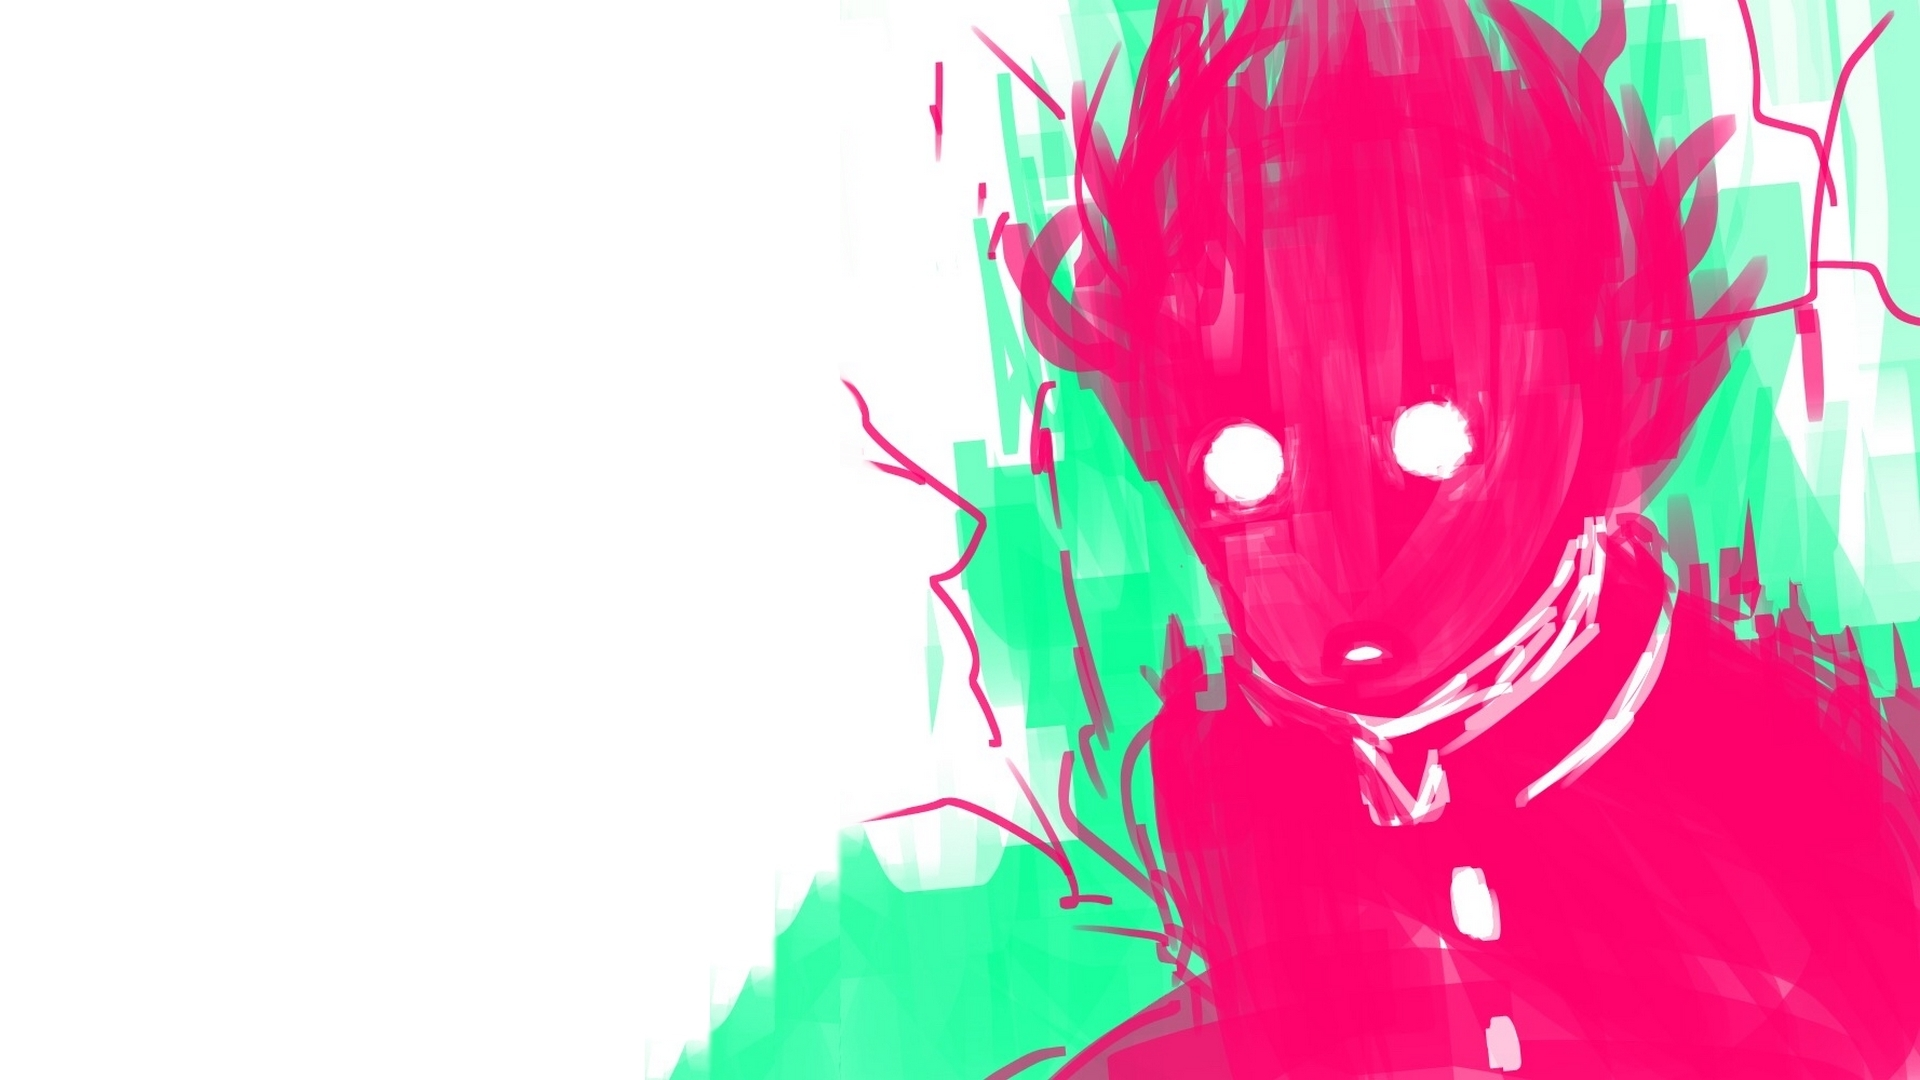 10 Top Mob Psycho 100 Wallpaper Full Hd 1920 1080 For Pc Background